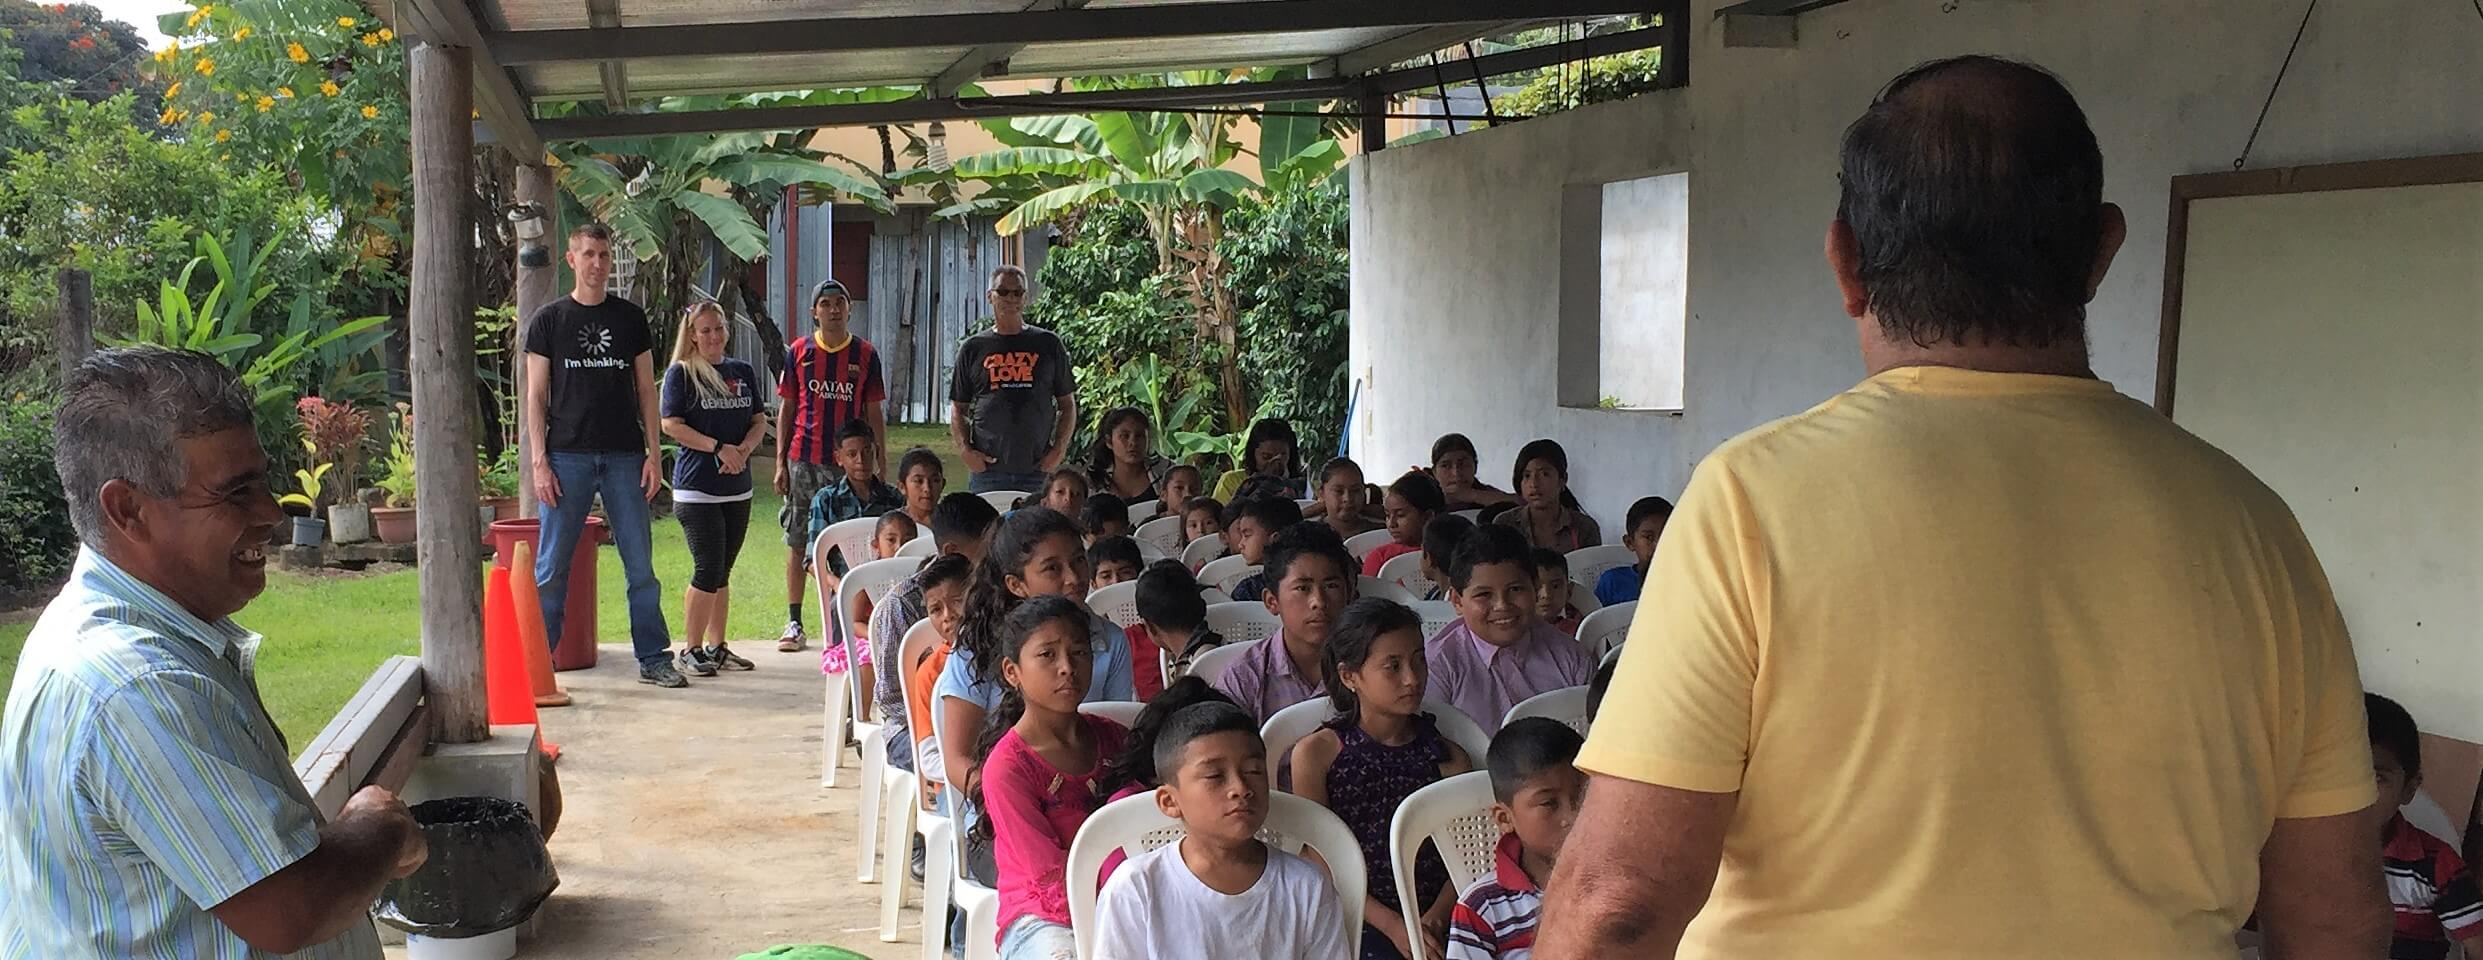 About 60 children came for our children's event at Cesar's house. Here they sat for instructions before breaking into three groups.